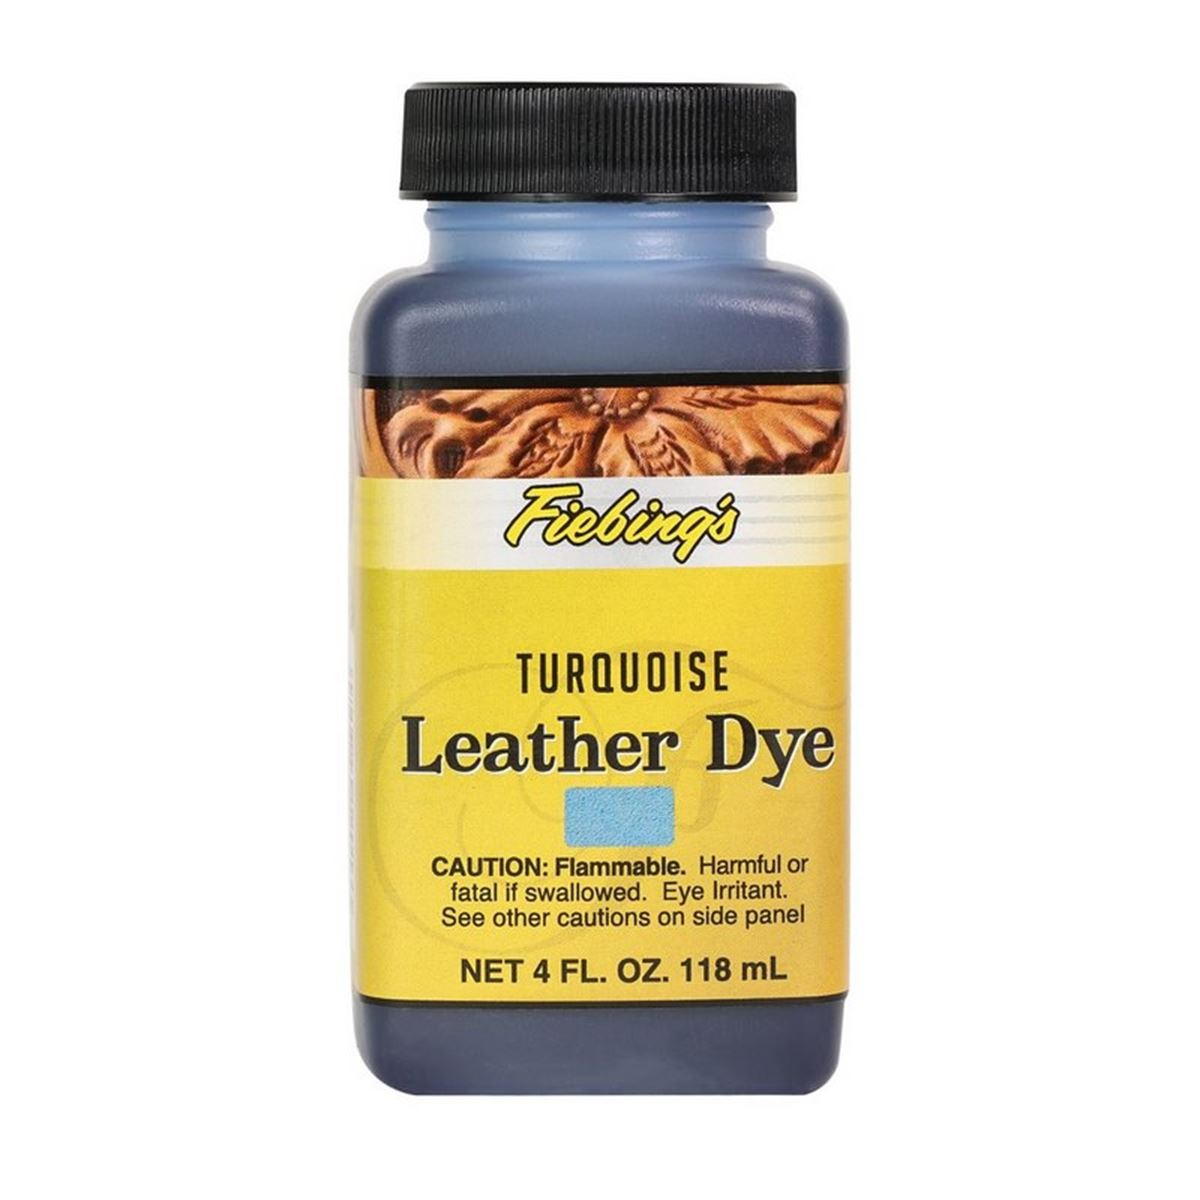 Teinture pour cuir FIEBING'S Leather dye - TURQUOISE